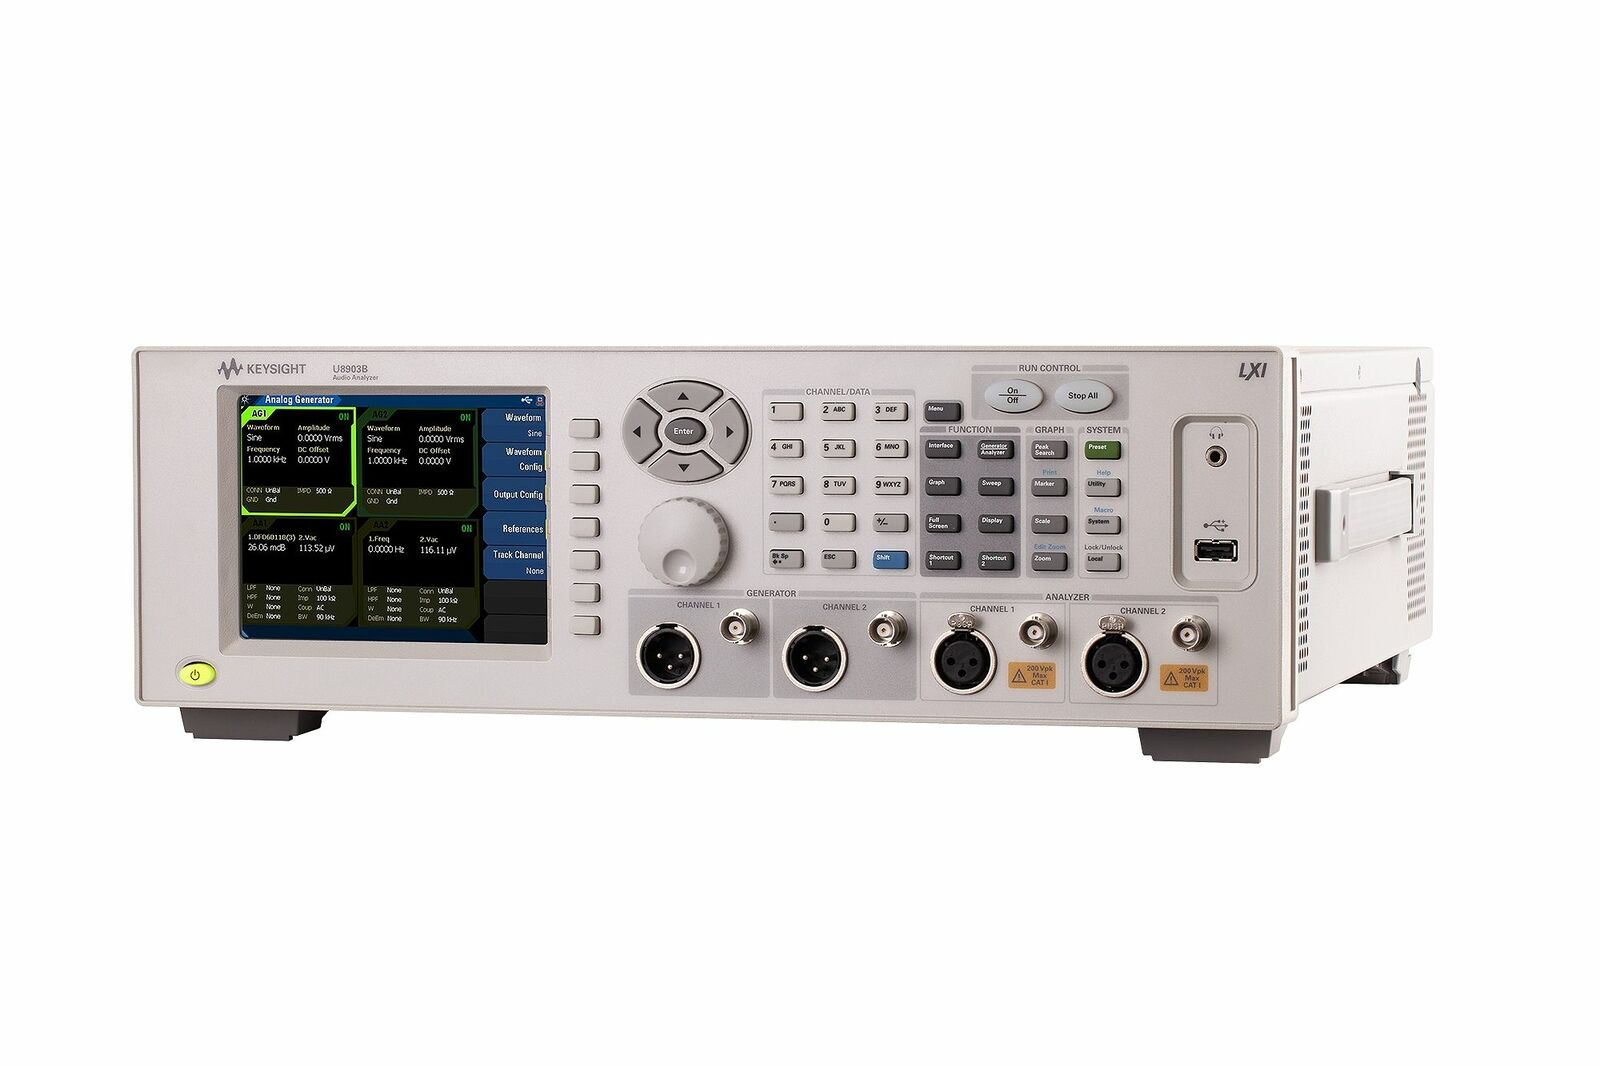 Keysight U8903B-STD 2 Channels